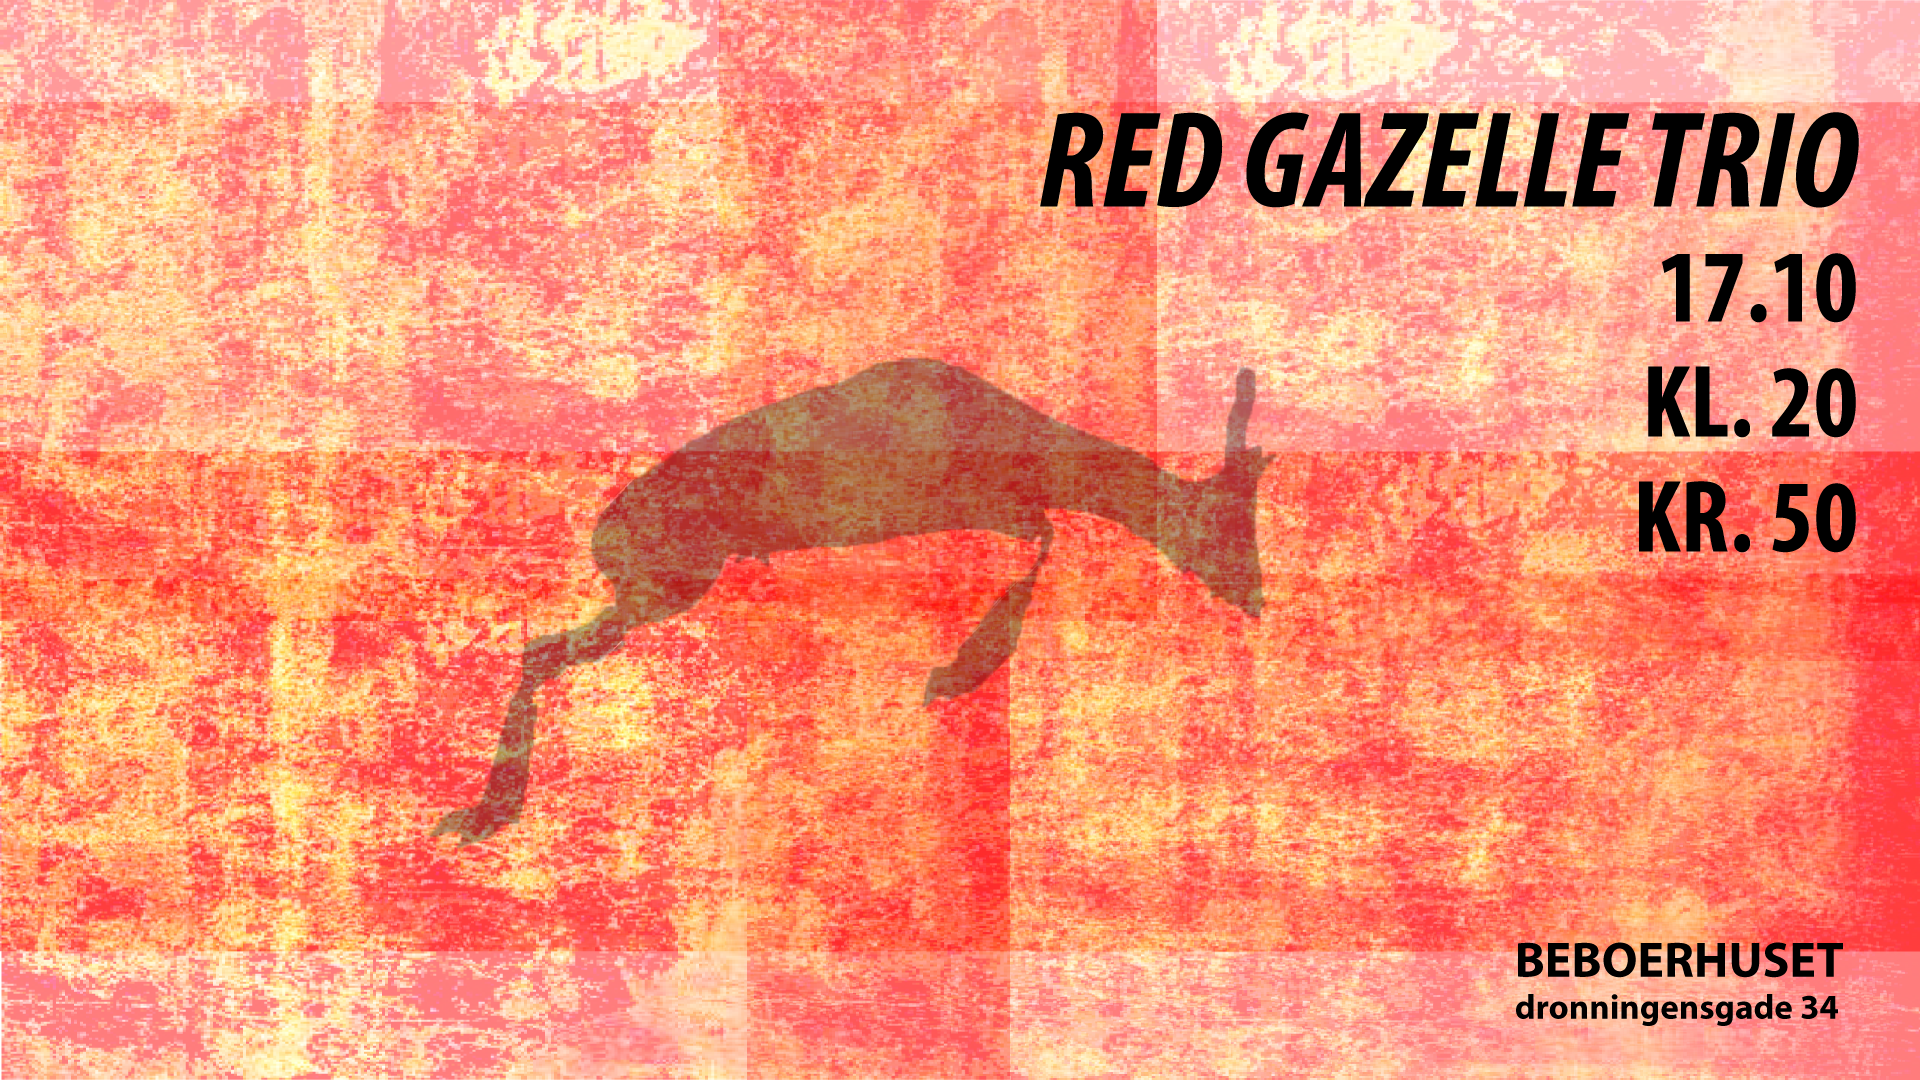 Red Gazelle Trio